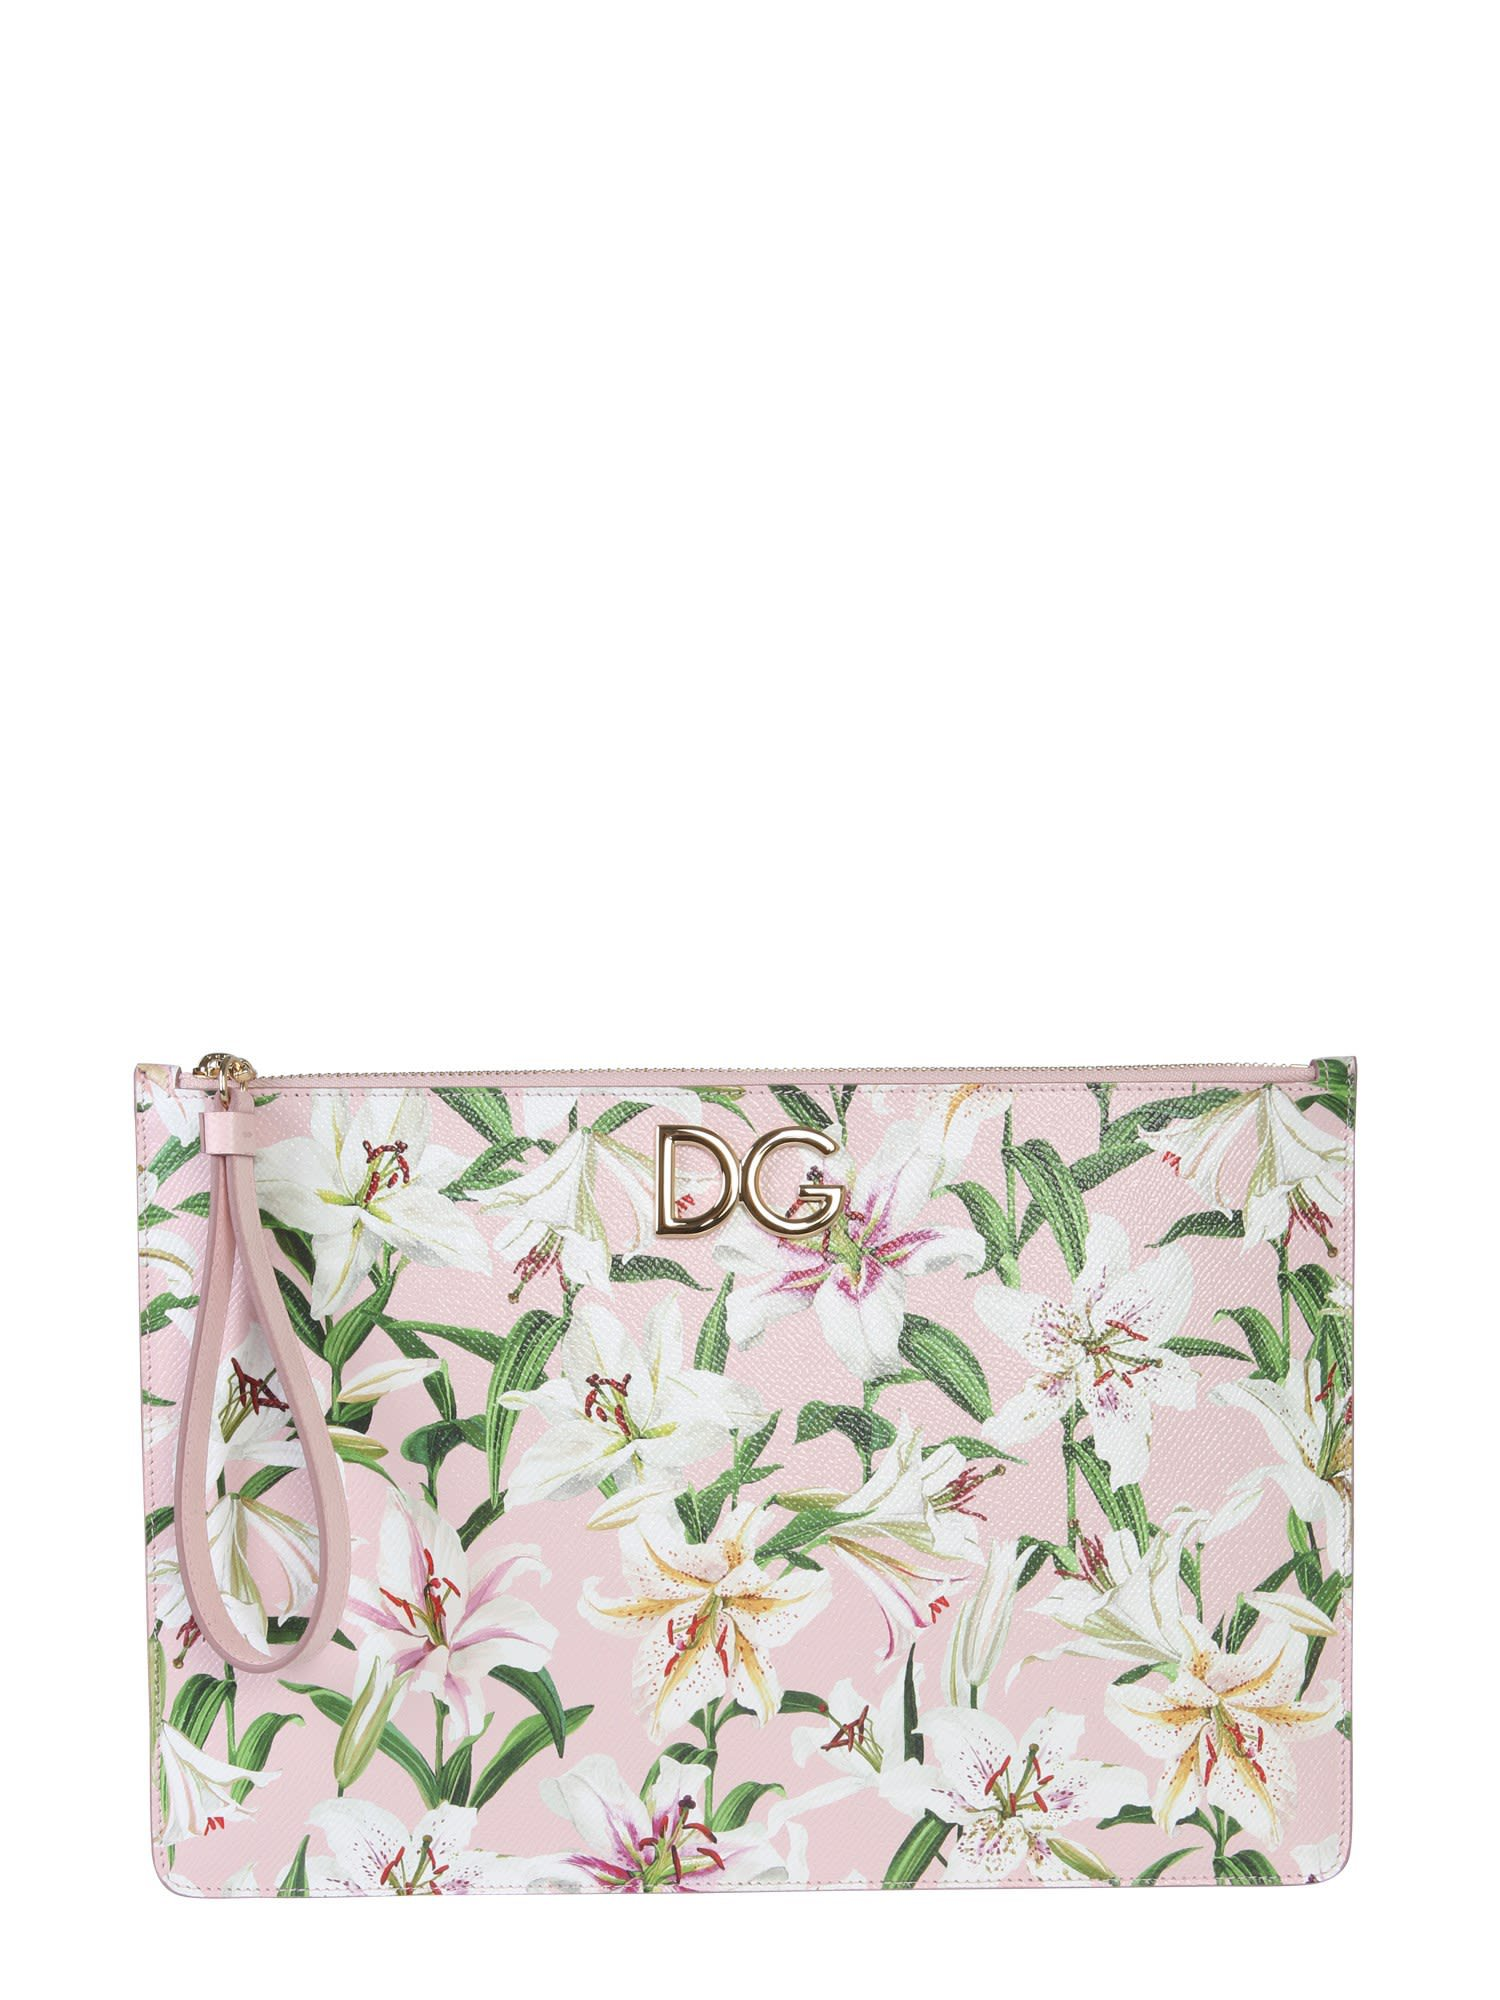 Dolce & Gabbana Dauphine Leather Clutch Bag